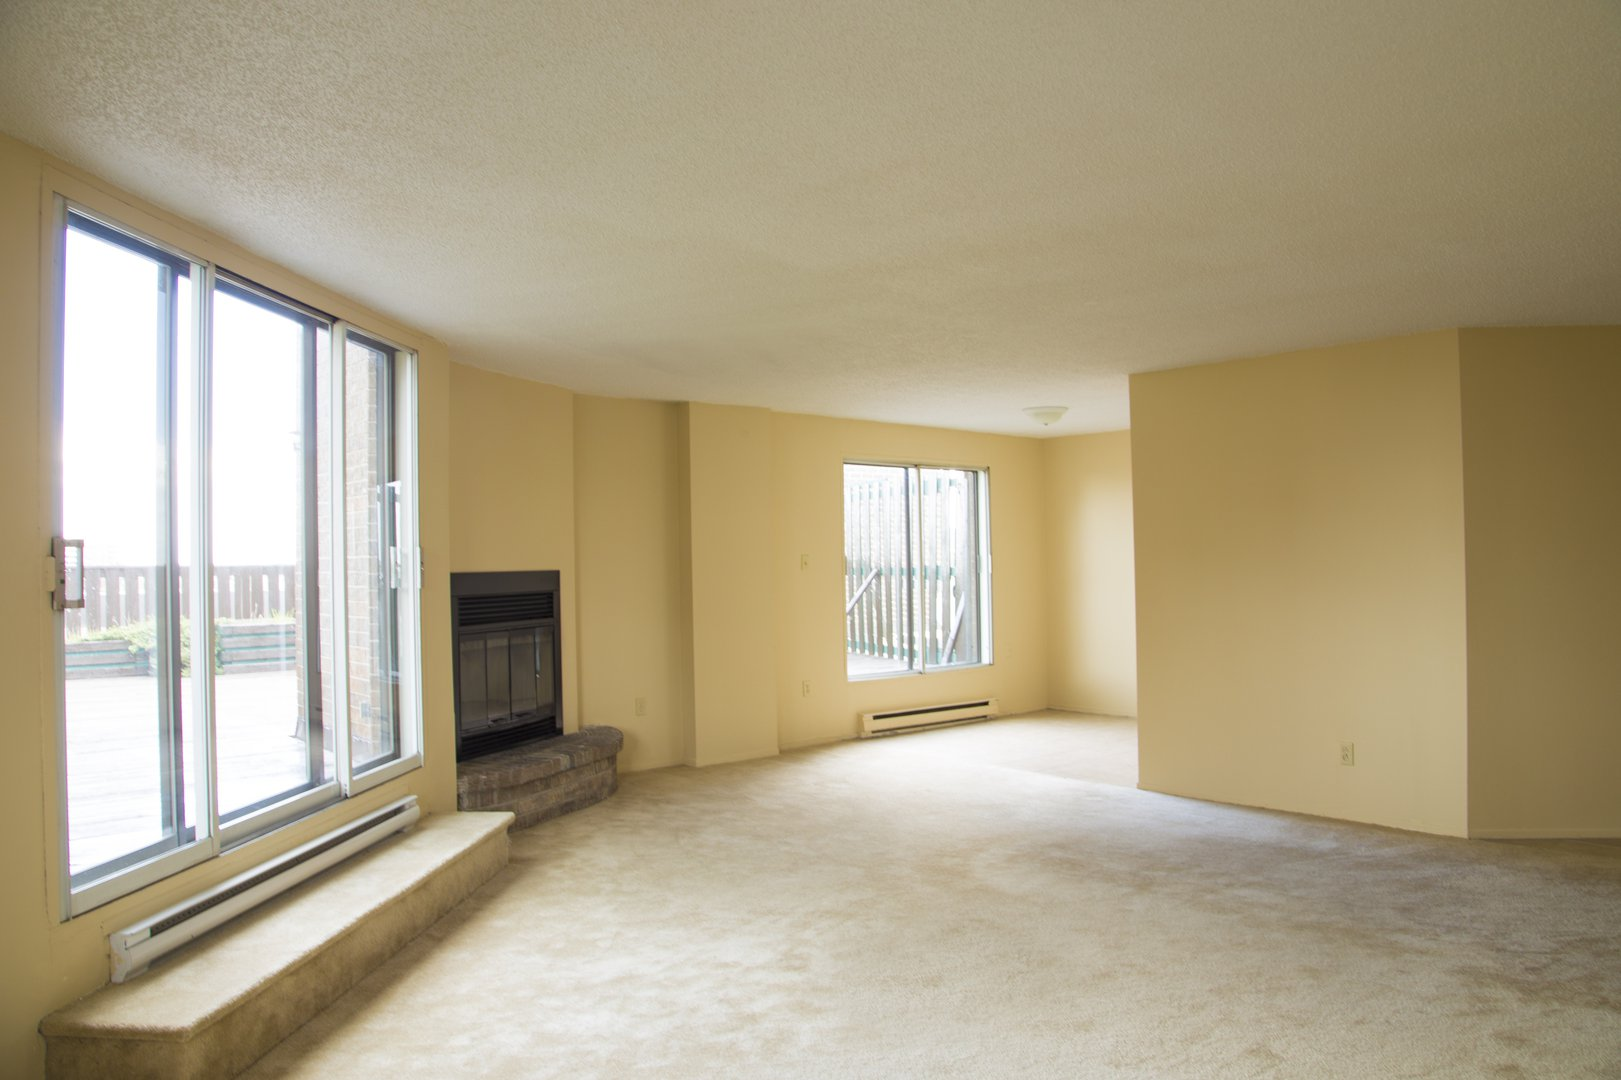 High-Rise Apartment for rent at 50 Quintin, suite 111, Ville Saint-Laurent, QC. This is the empty room with carpet, fireplace and natural light.